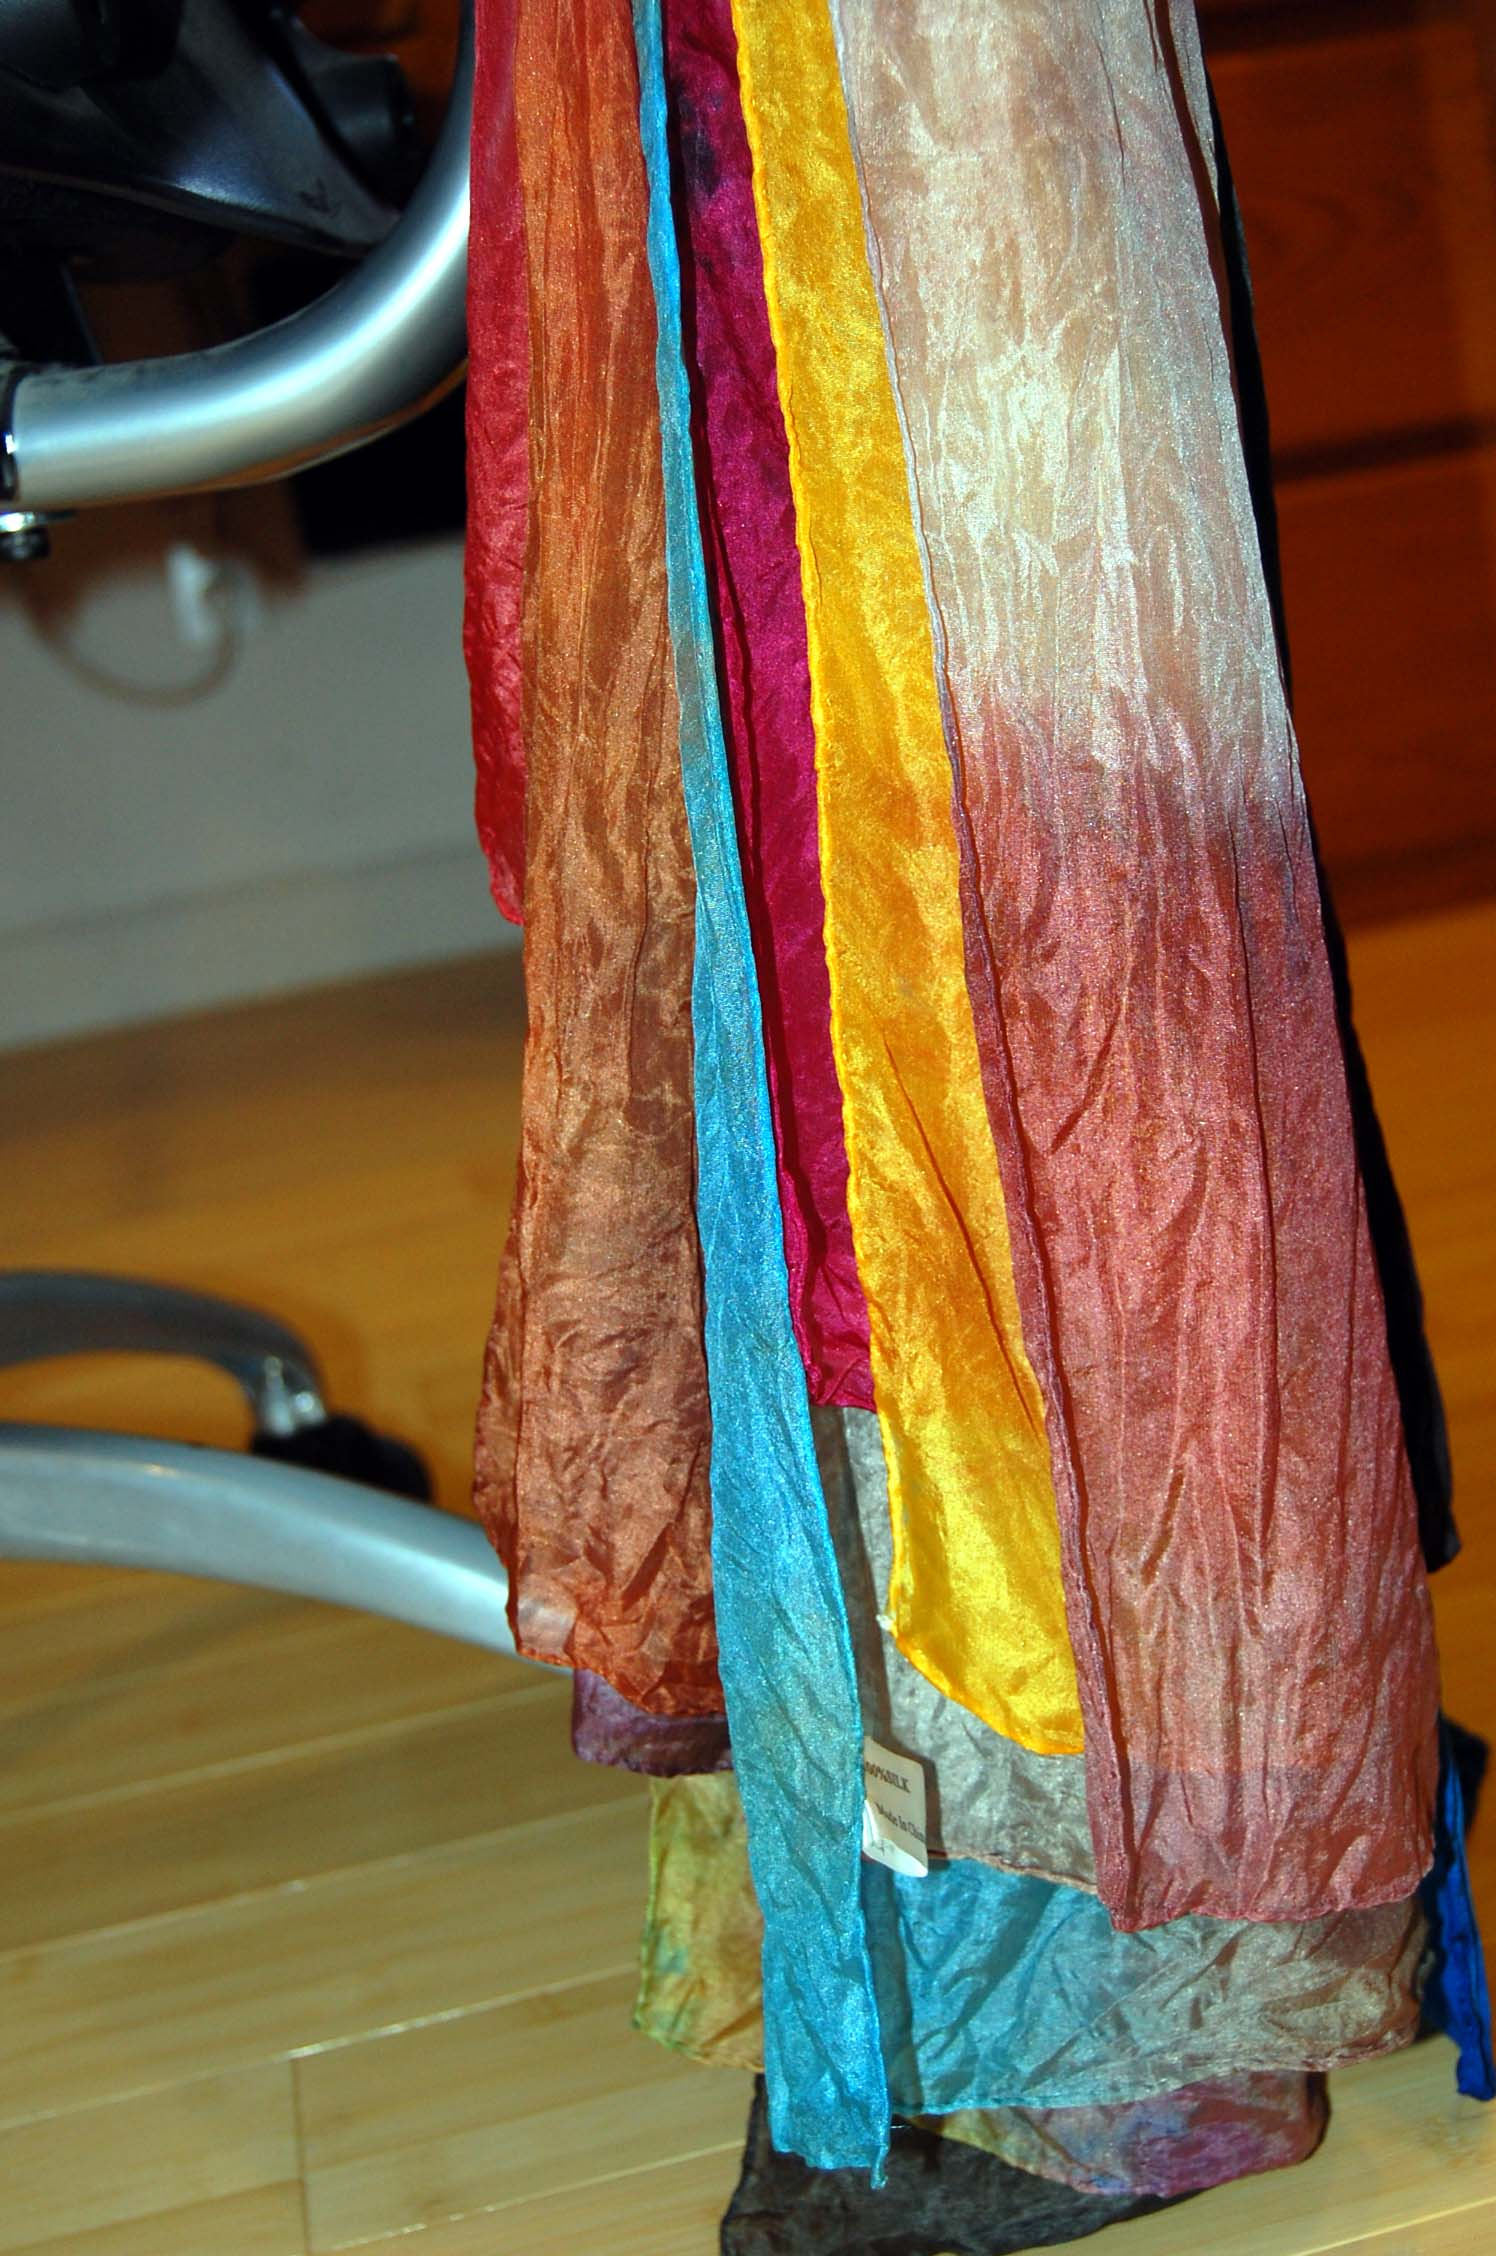 I drape them neatly in case I don't get them all ironsed before the dry. Which is the case this week - 60 scarves is a LOT to iron!